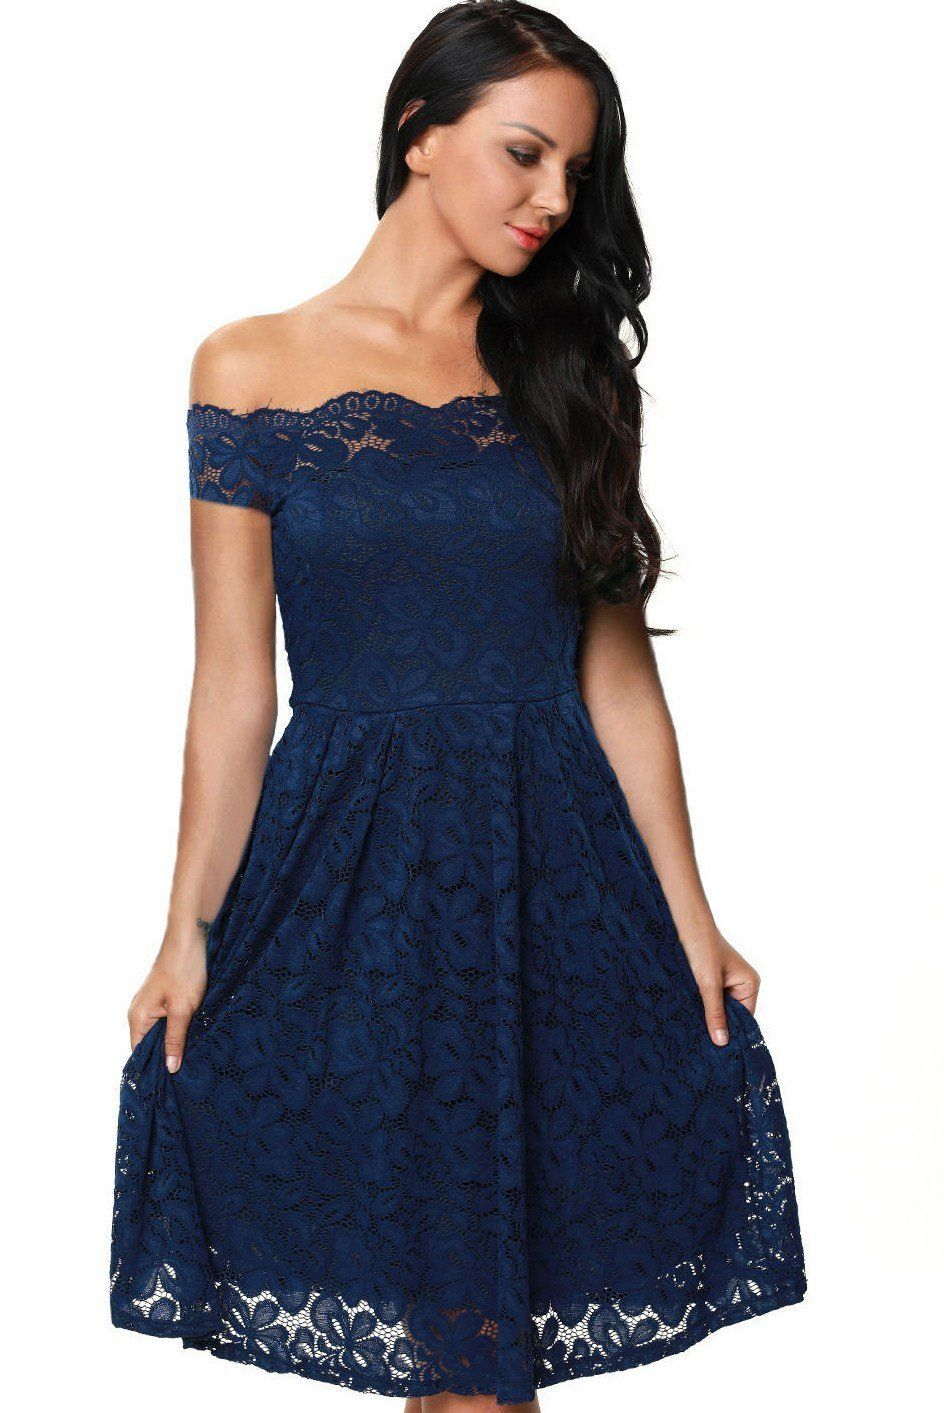 Chic navy blue scalloped off shoulder short sleeve lace flared dress